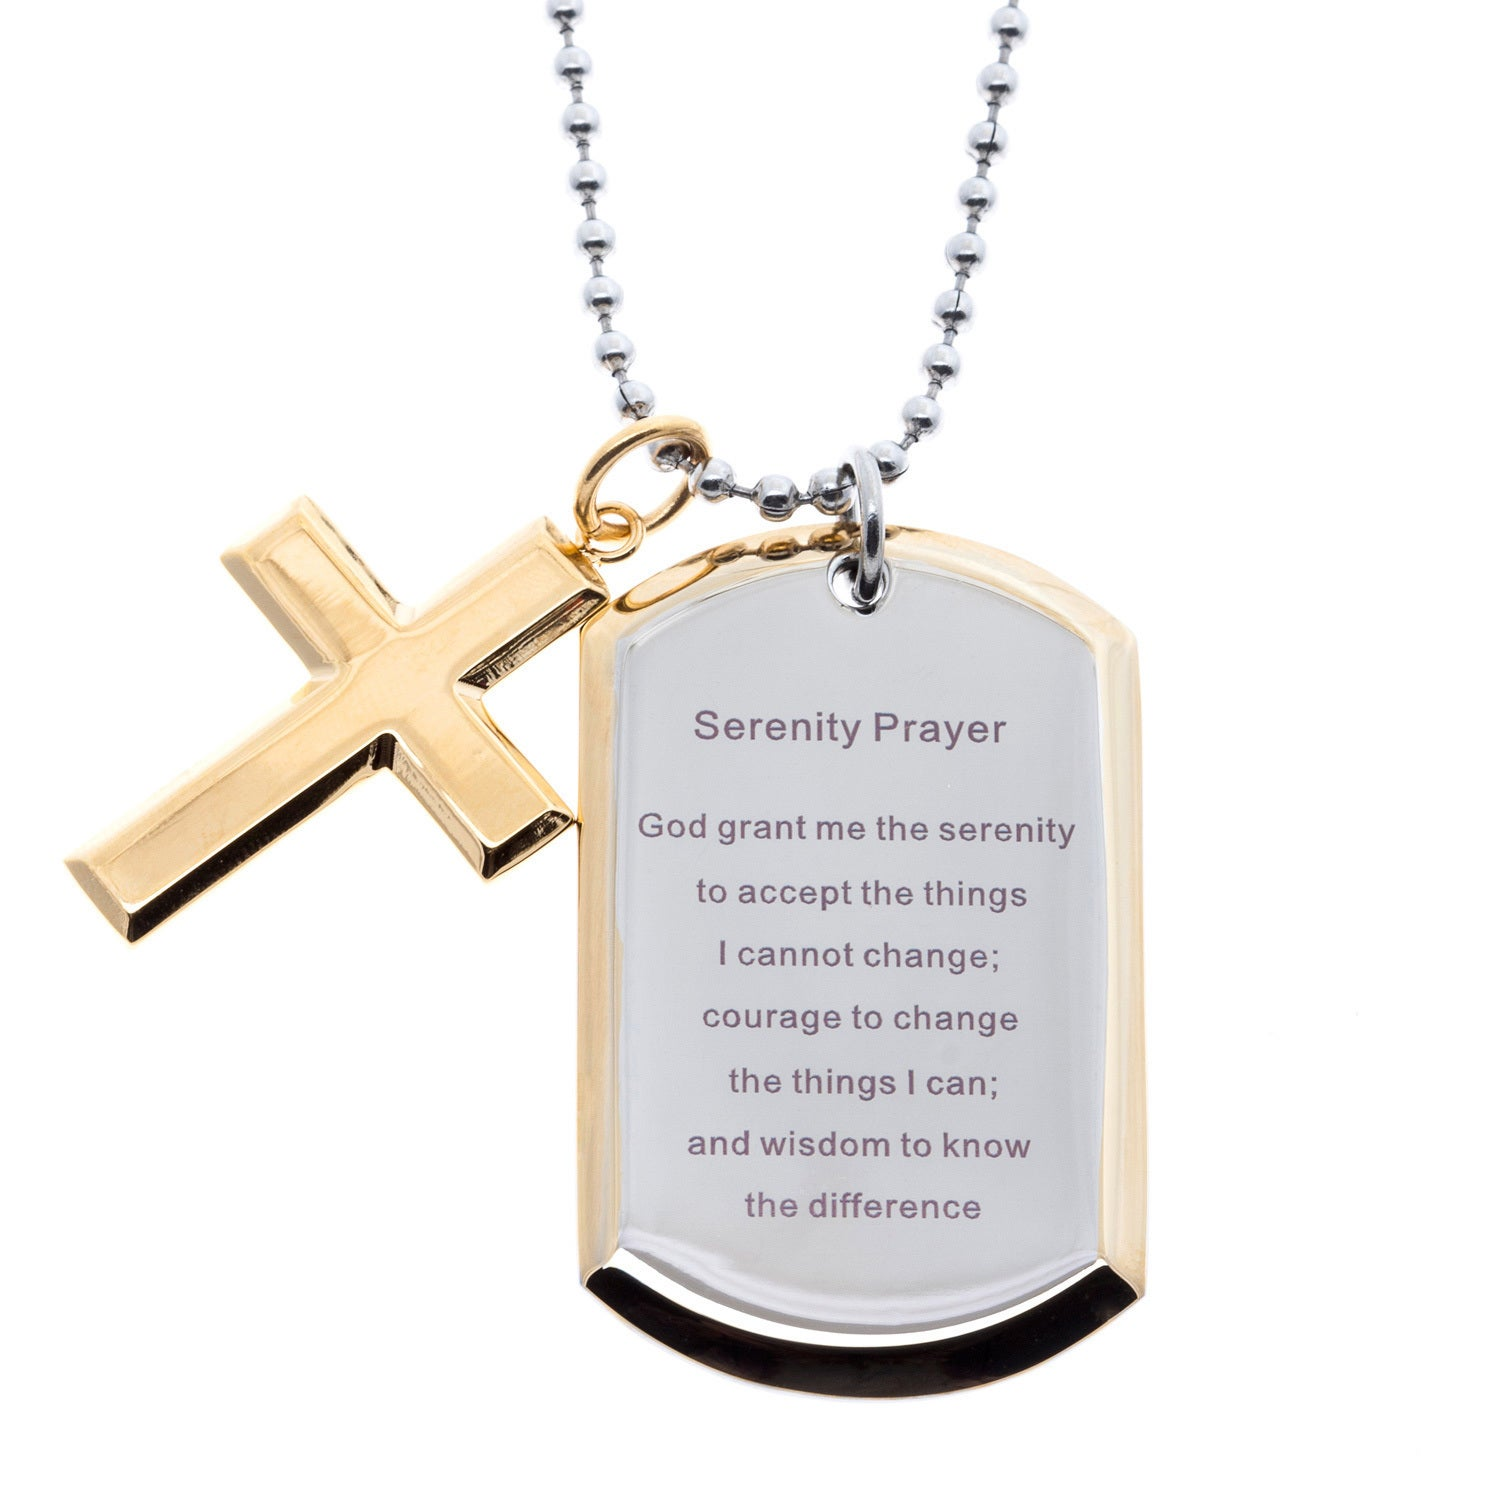 recovery sobriety prayer gift personalized date aa anniversary na fullsizeoutput sober stamped hand necklace with cr serenity